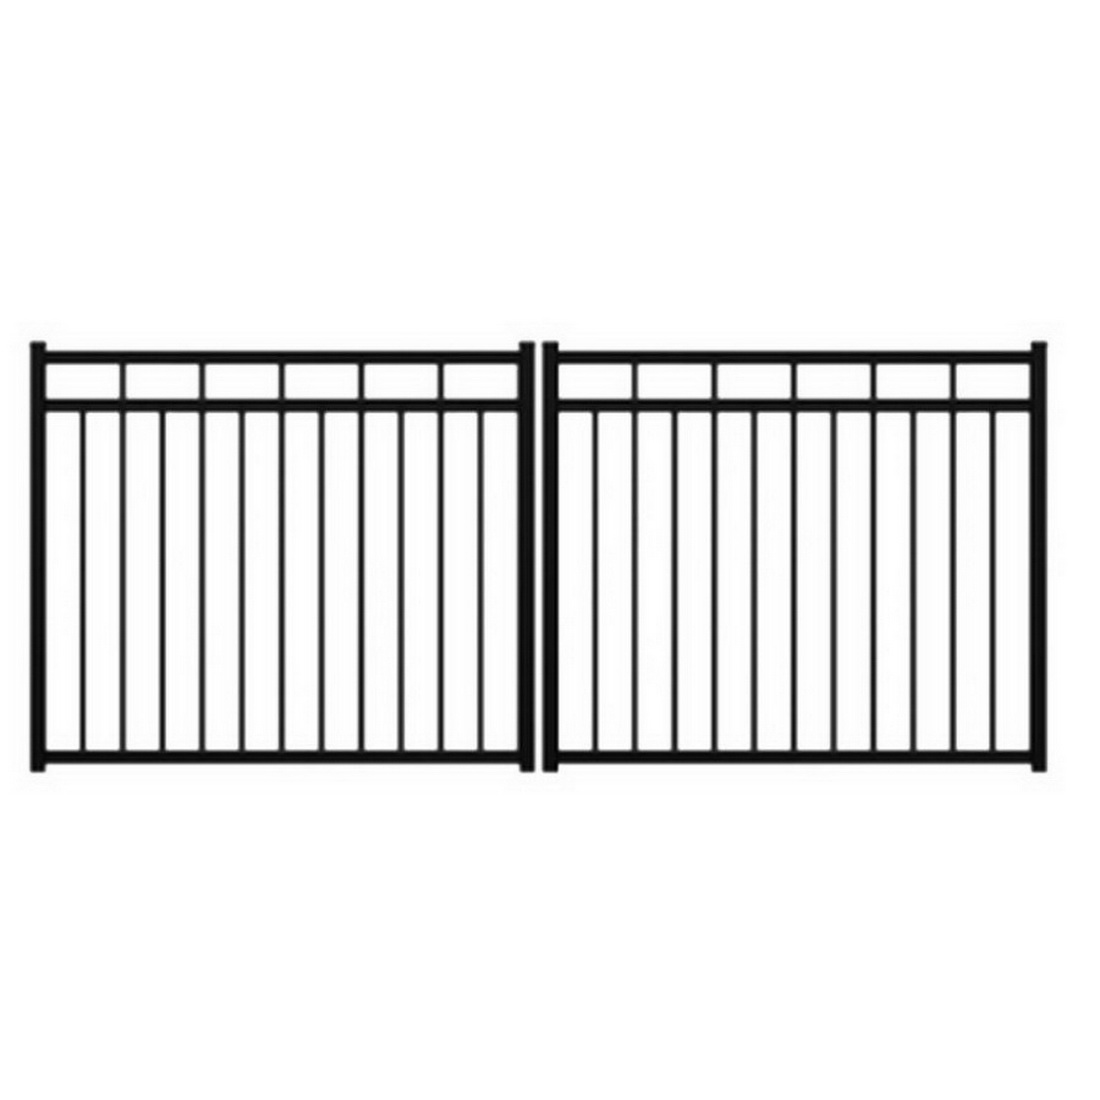 Mansion 1200H Driveway Gate 1200 x 3000mm Powder Coat Aluminum FAMDG1223